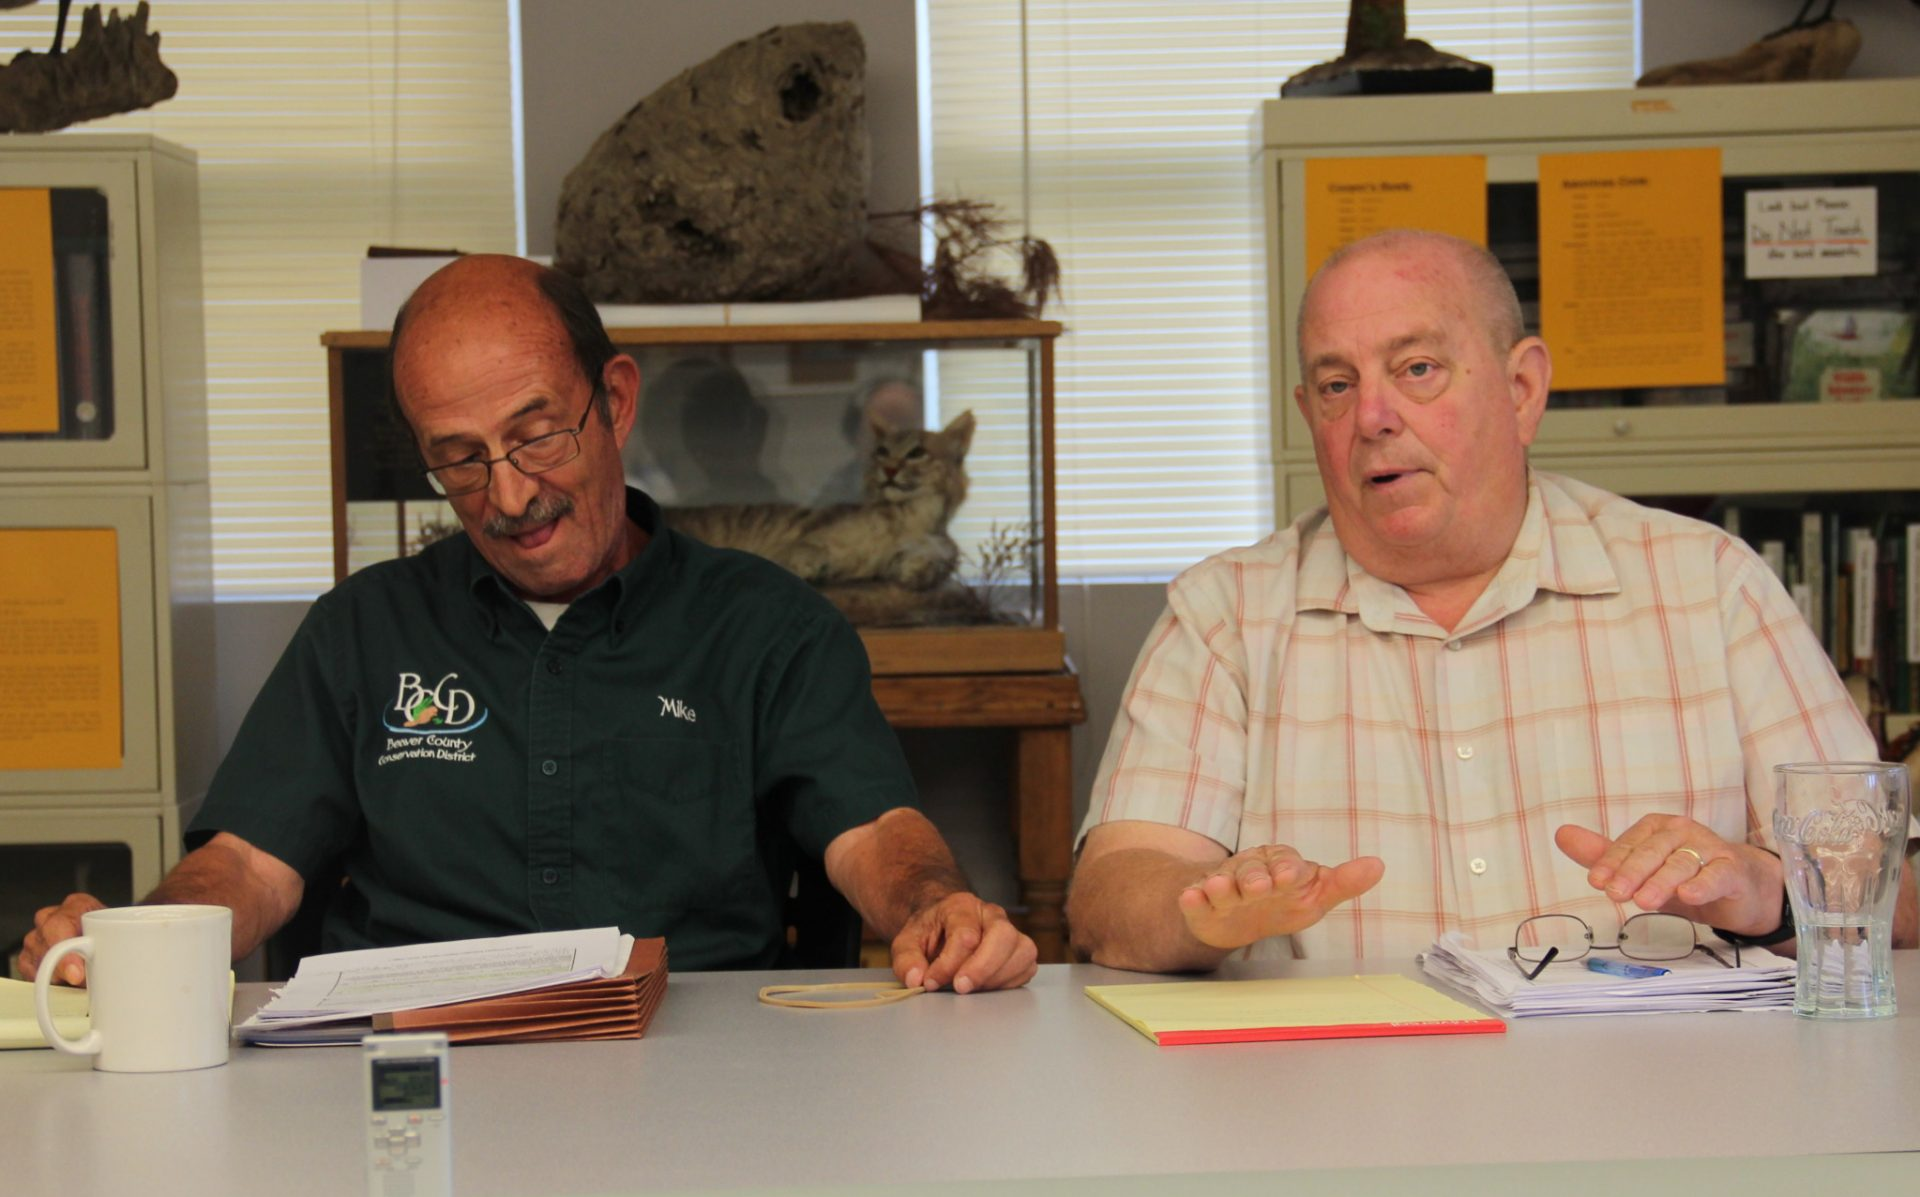 Beaver County Conservation District executive director Jim Shaner, right, and Michael Price, its board chairman, at a public meeting on the district's erosion permitting Aug. 28, 2019. Photo: Reid R. Frazier